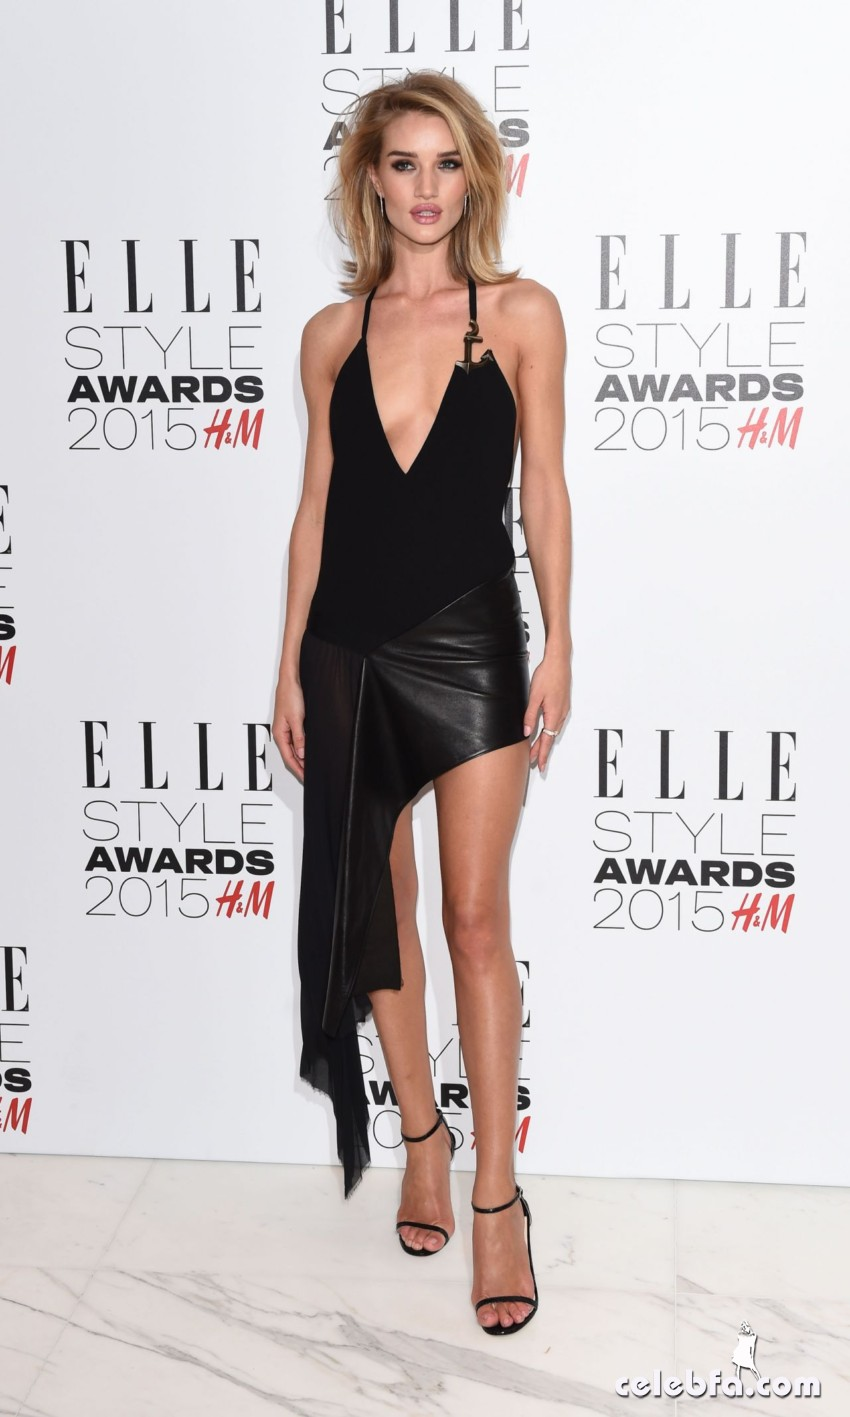 rosie-huntington-whiteley-2015-elle-style-awards-in-london (4)